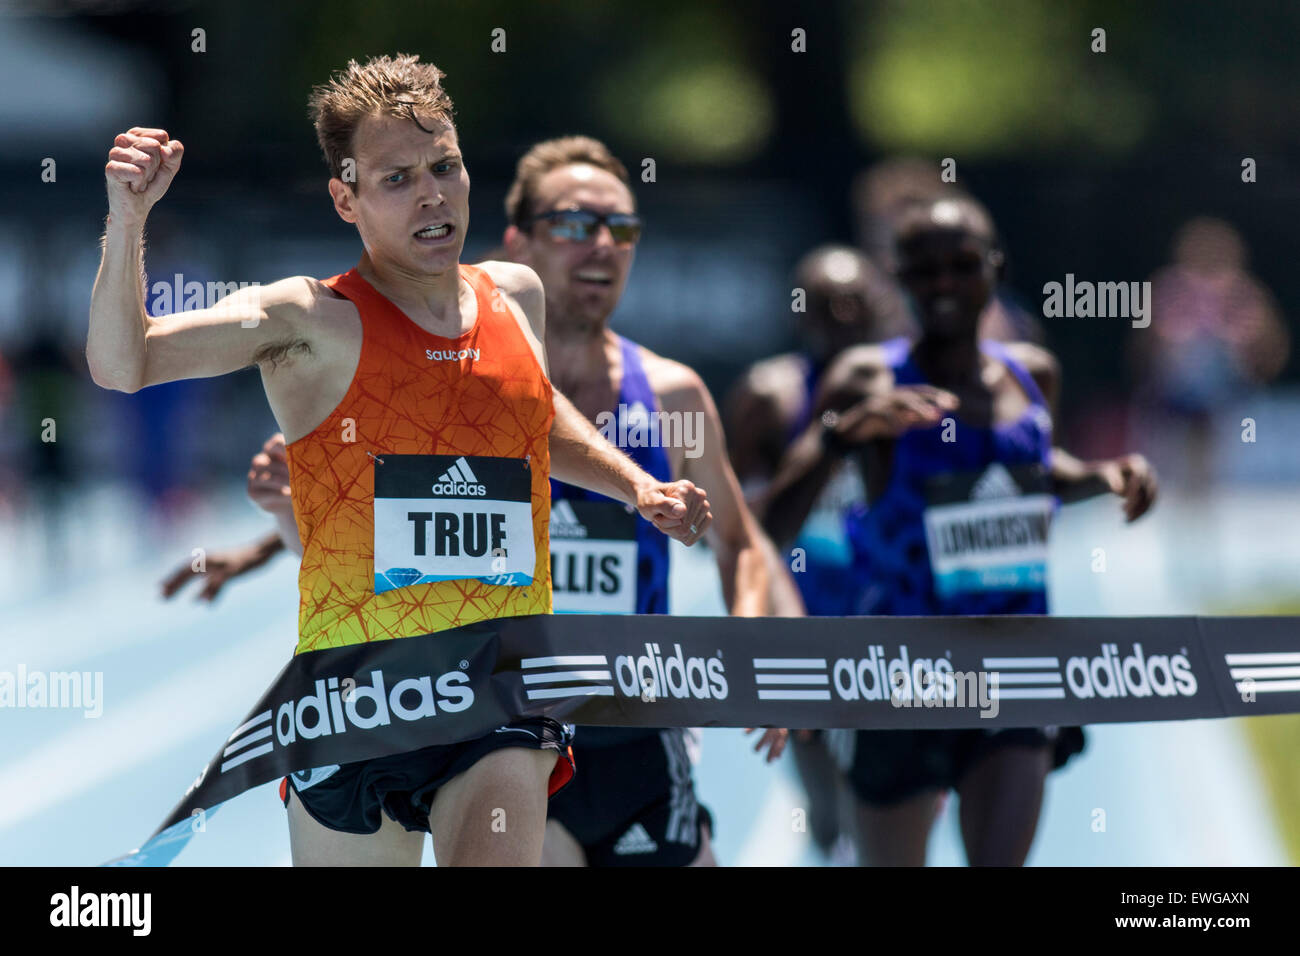 Ben Vrai (USA) bat Nick Willis (NZL) dans l'épreuve du 5000m à l'Adidas 2015 Grand Prix de la Photo Stock